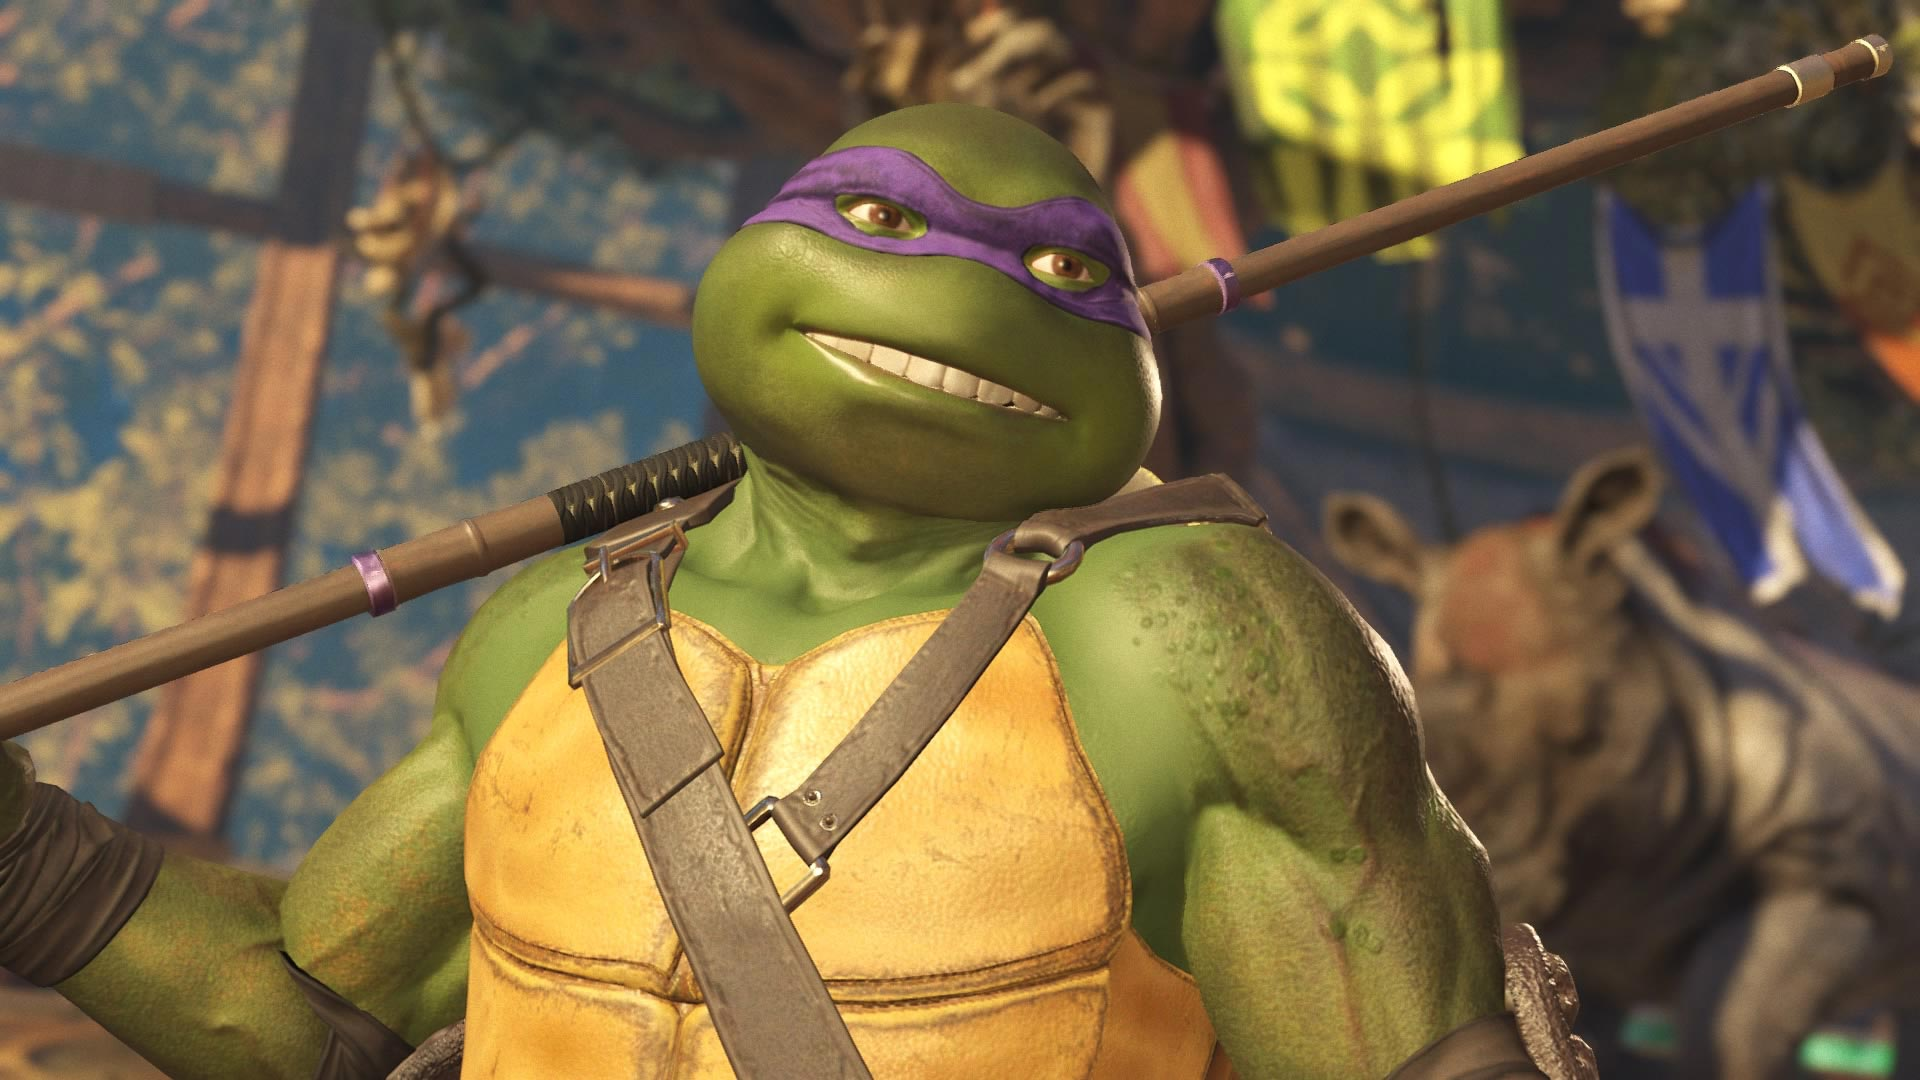 Teenage Mutant Ninja Turtles now available in Injustice 2 1 out of 6 image gallery